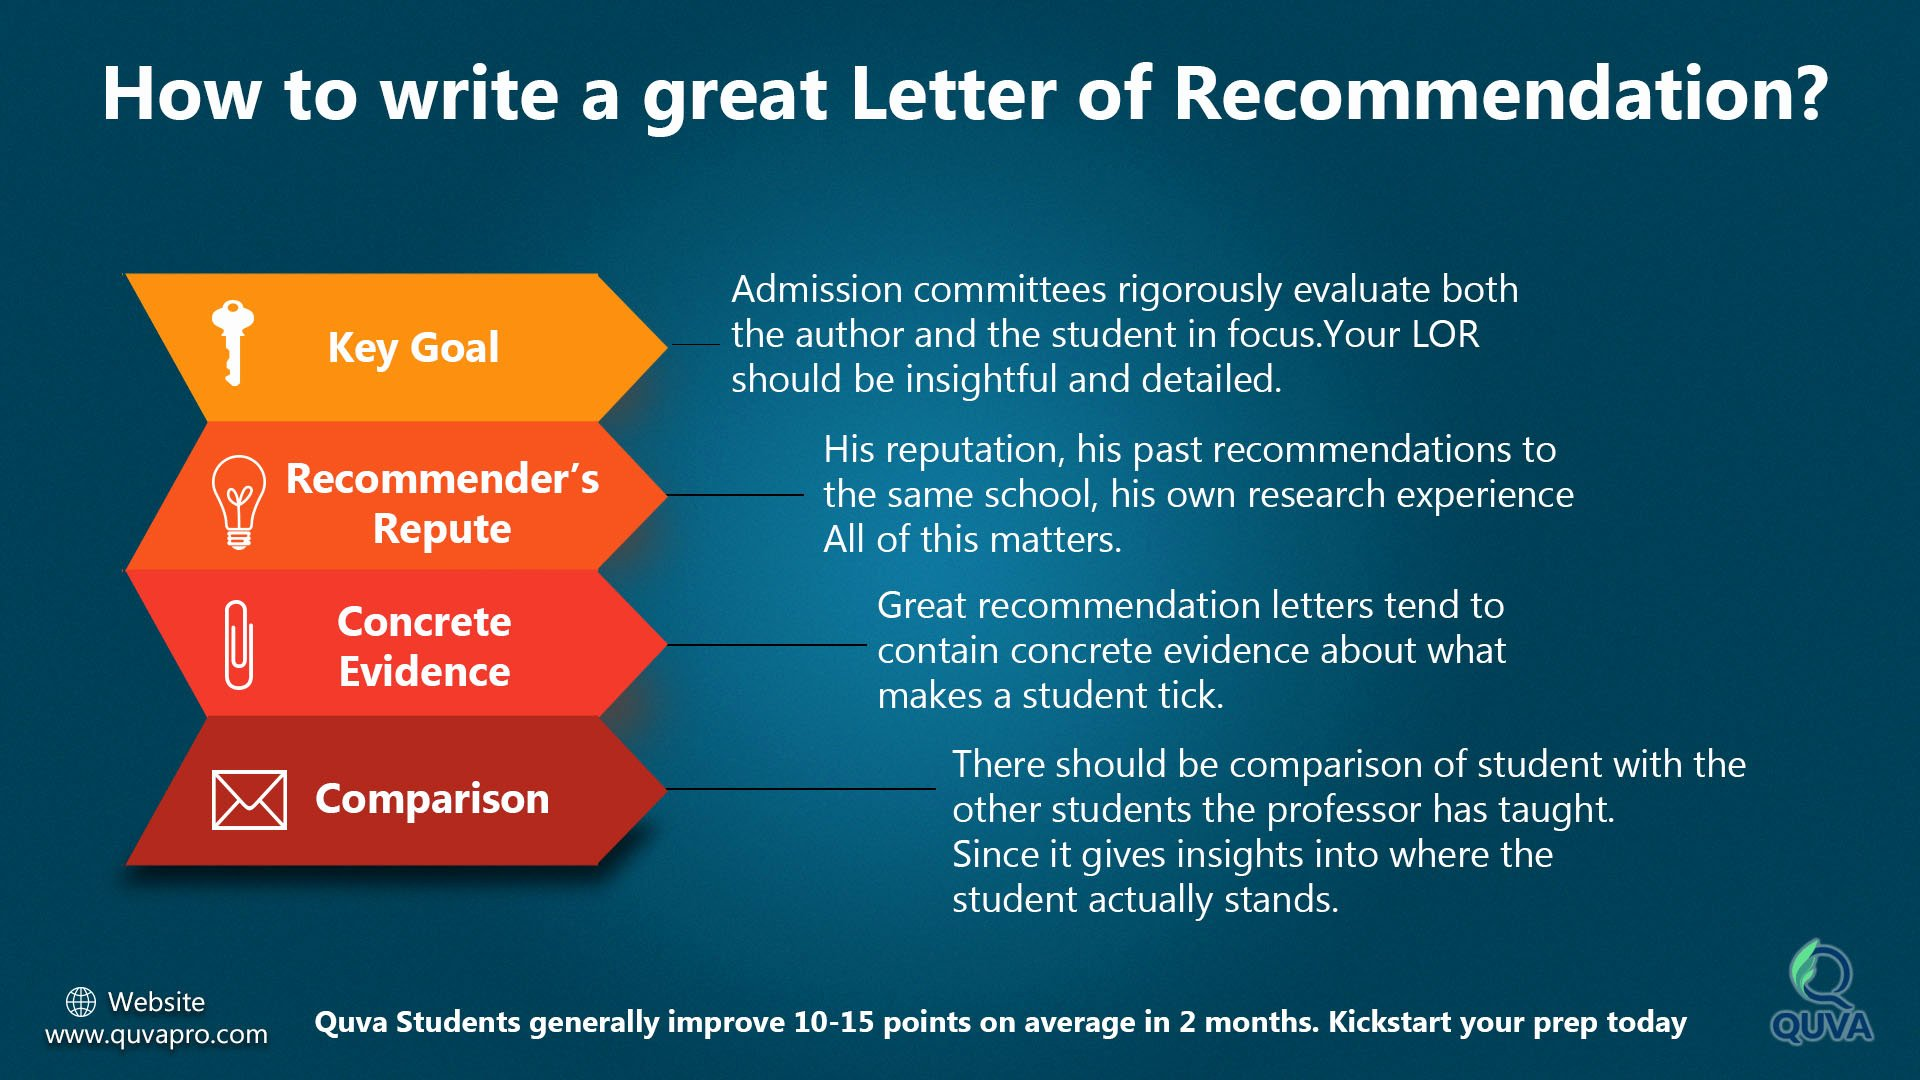 Remind Professor for Recommendation Letter Elegant How to Write A Great Letter Of Re Mendation Quva